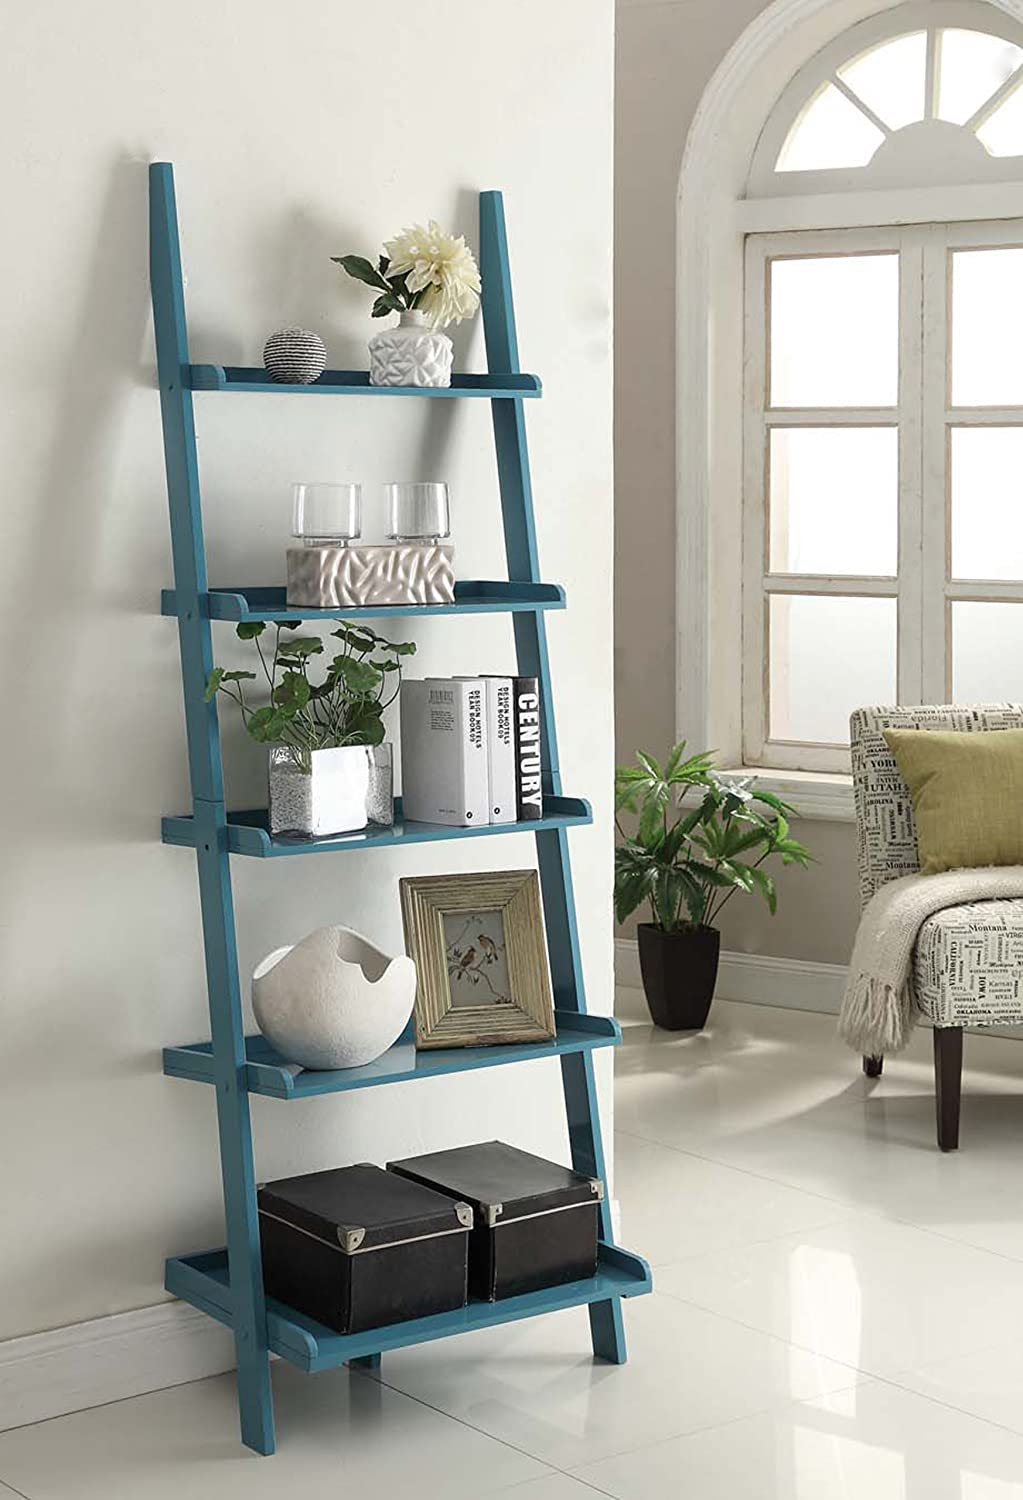 Amazon.com: Convenience Concepts French Country Bookshelf Ladder, Blue:  Kitchen & Dining